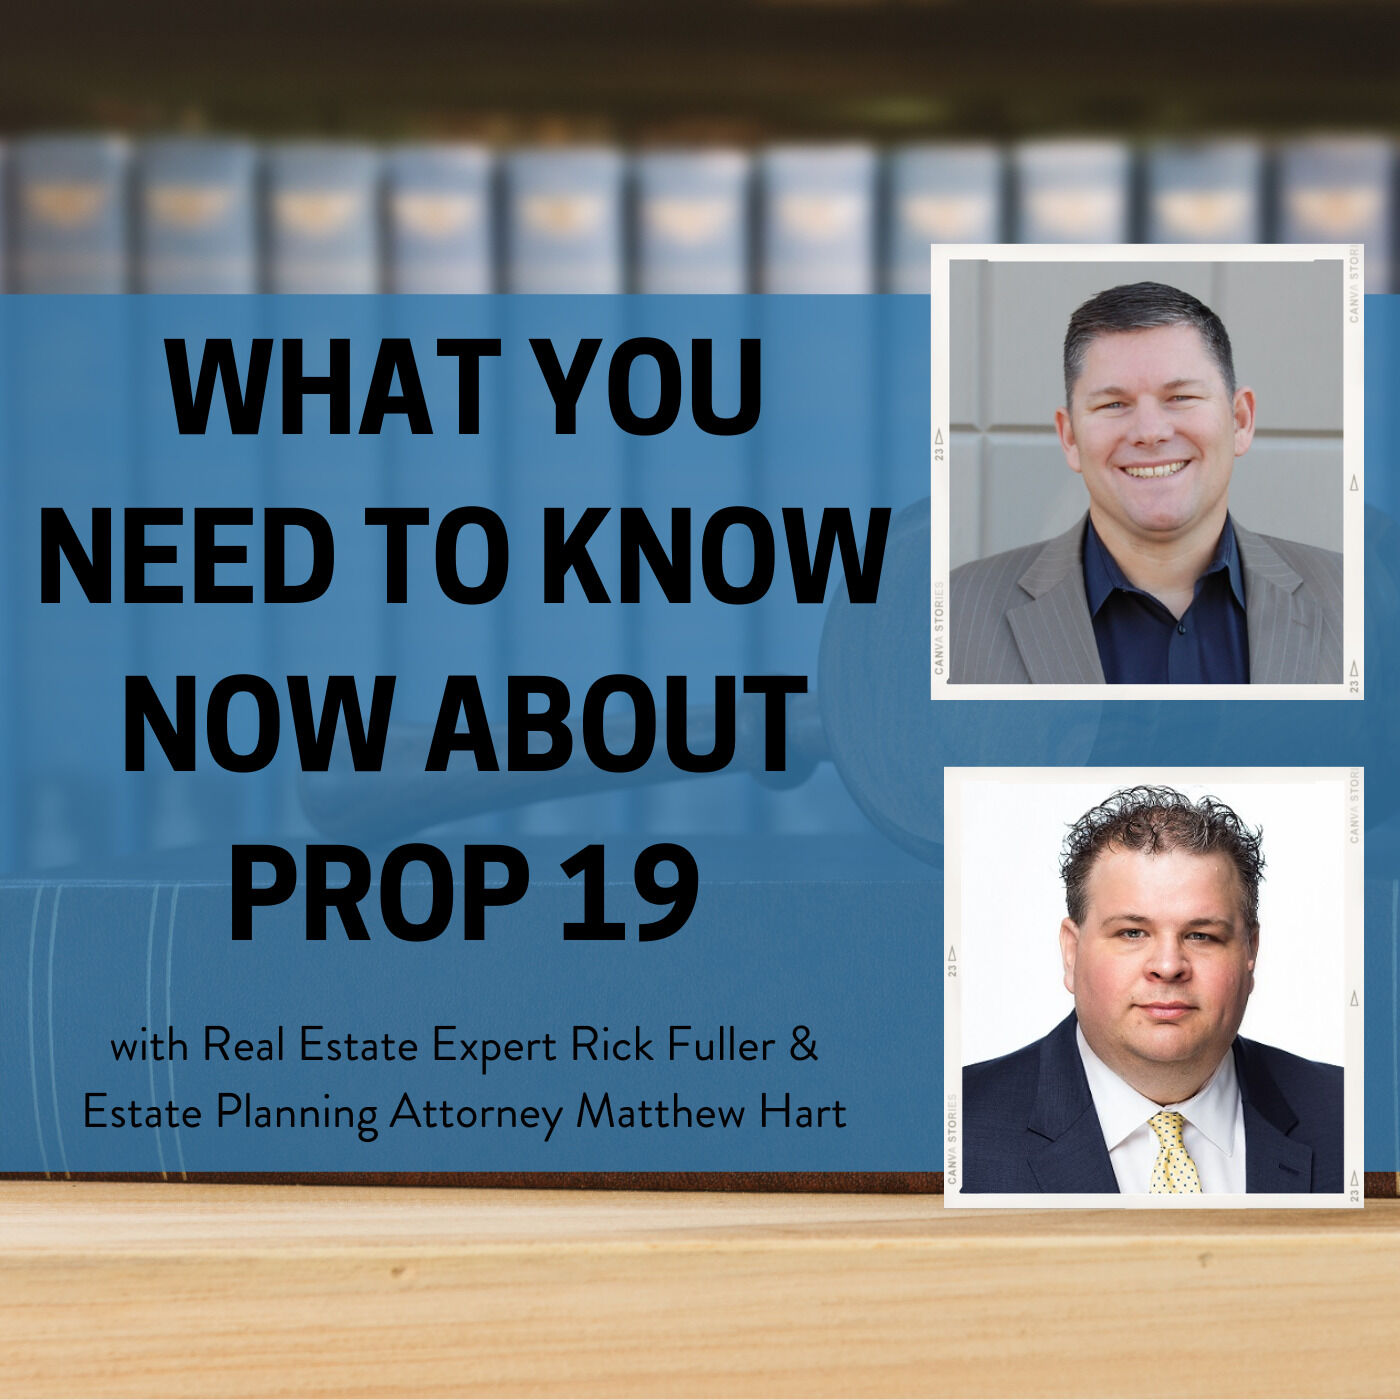 What You Need to Know NOW About Prop 19